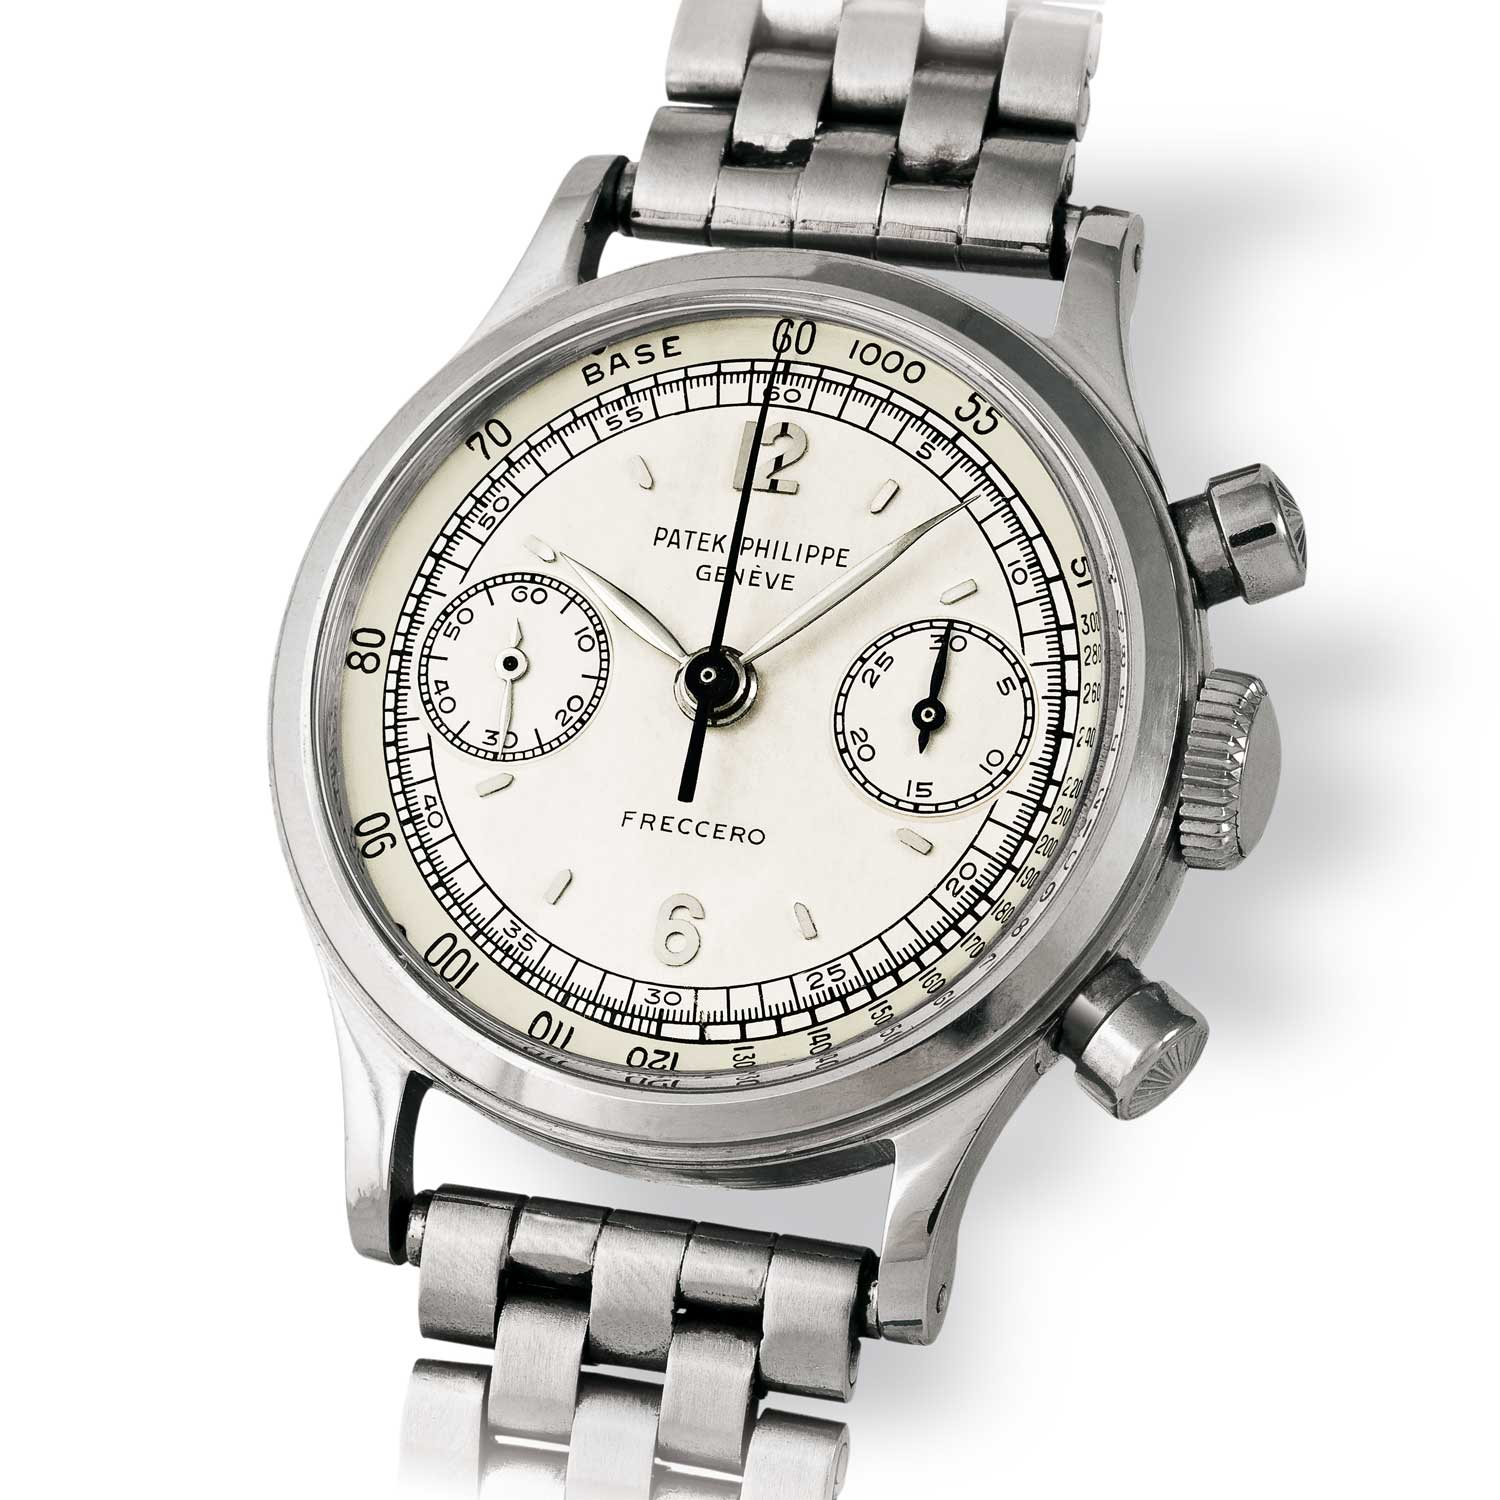 Patek Philippe ref. 1463 steel chronograph with Arabic numerals on a Gay Frères brick-style bracelet (Image: John Goldberger)